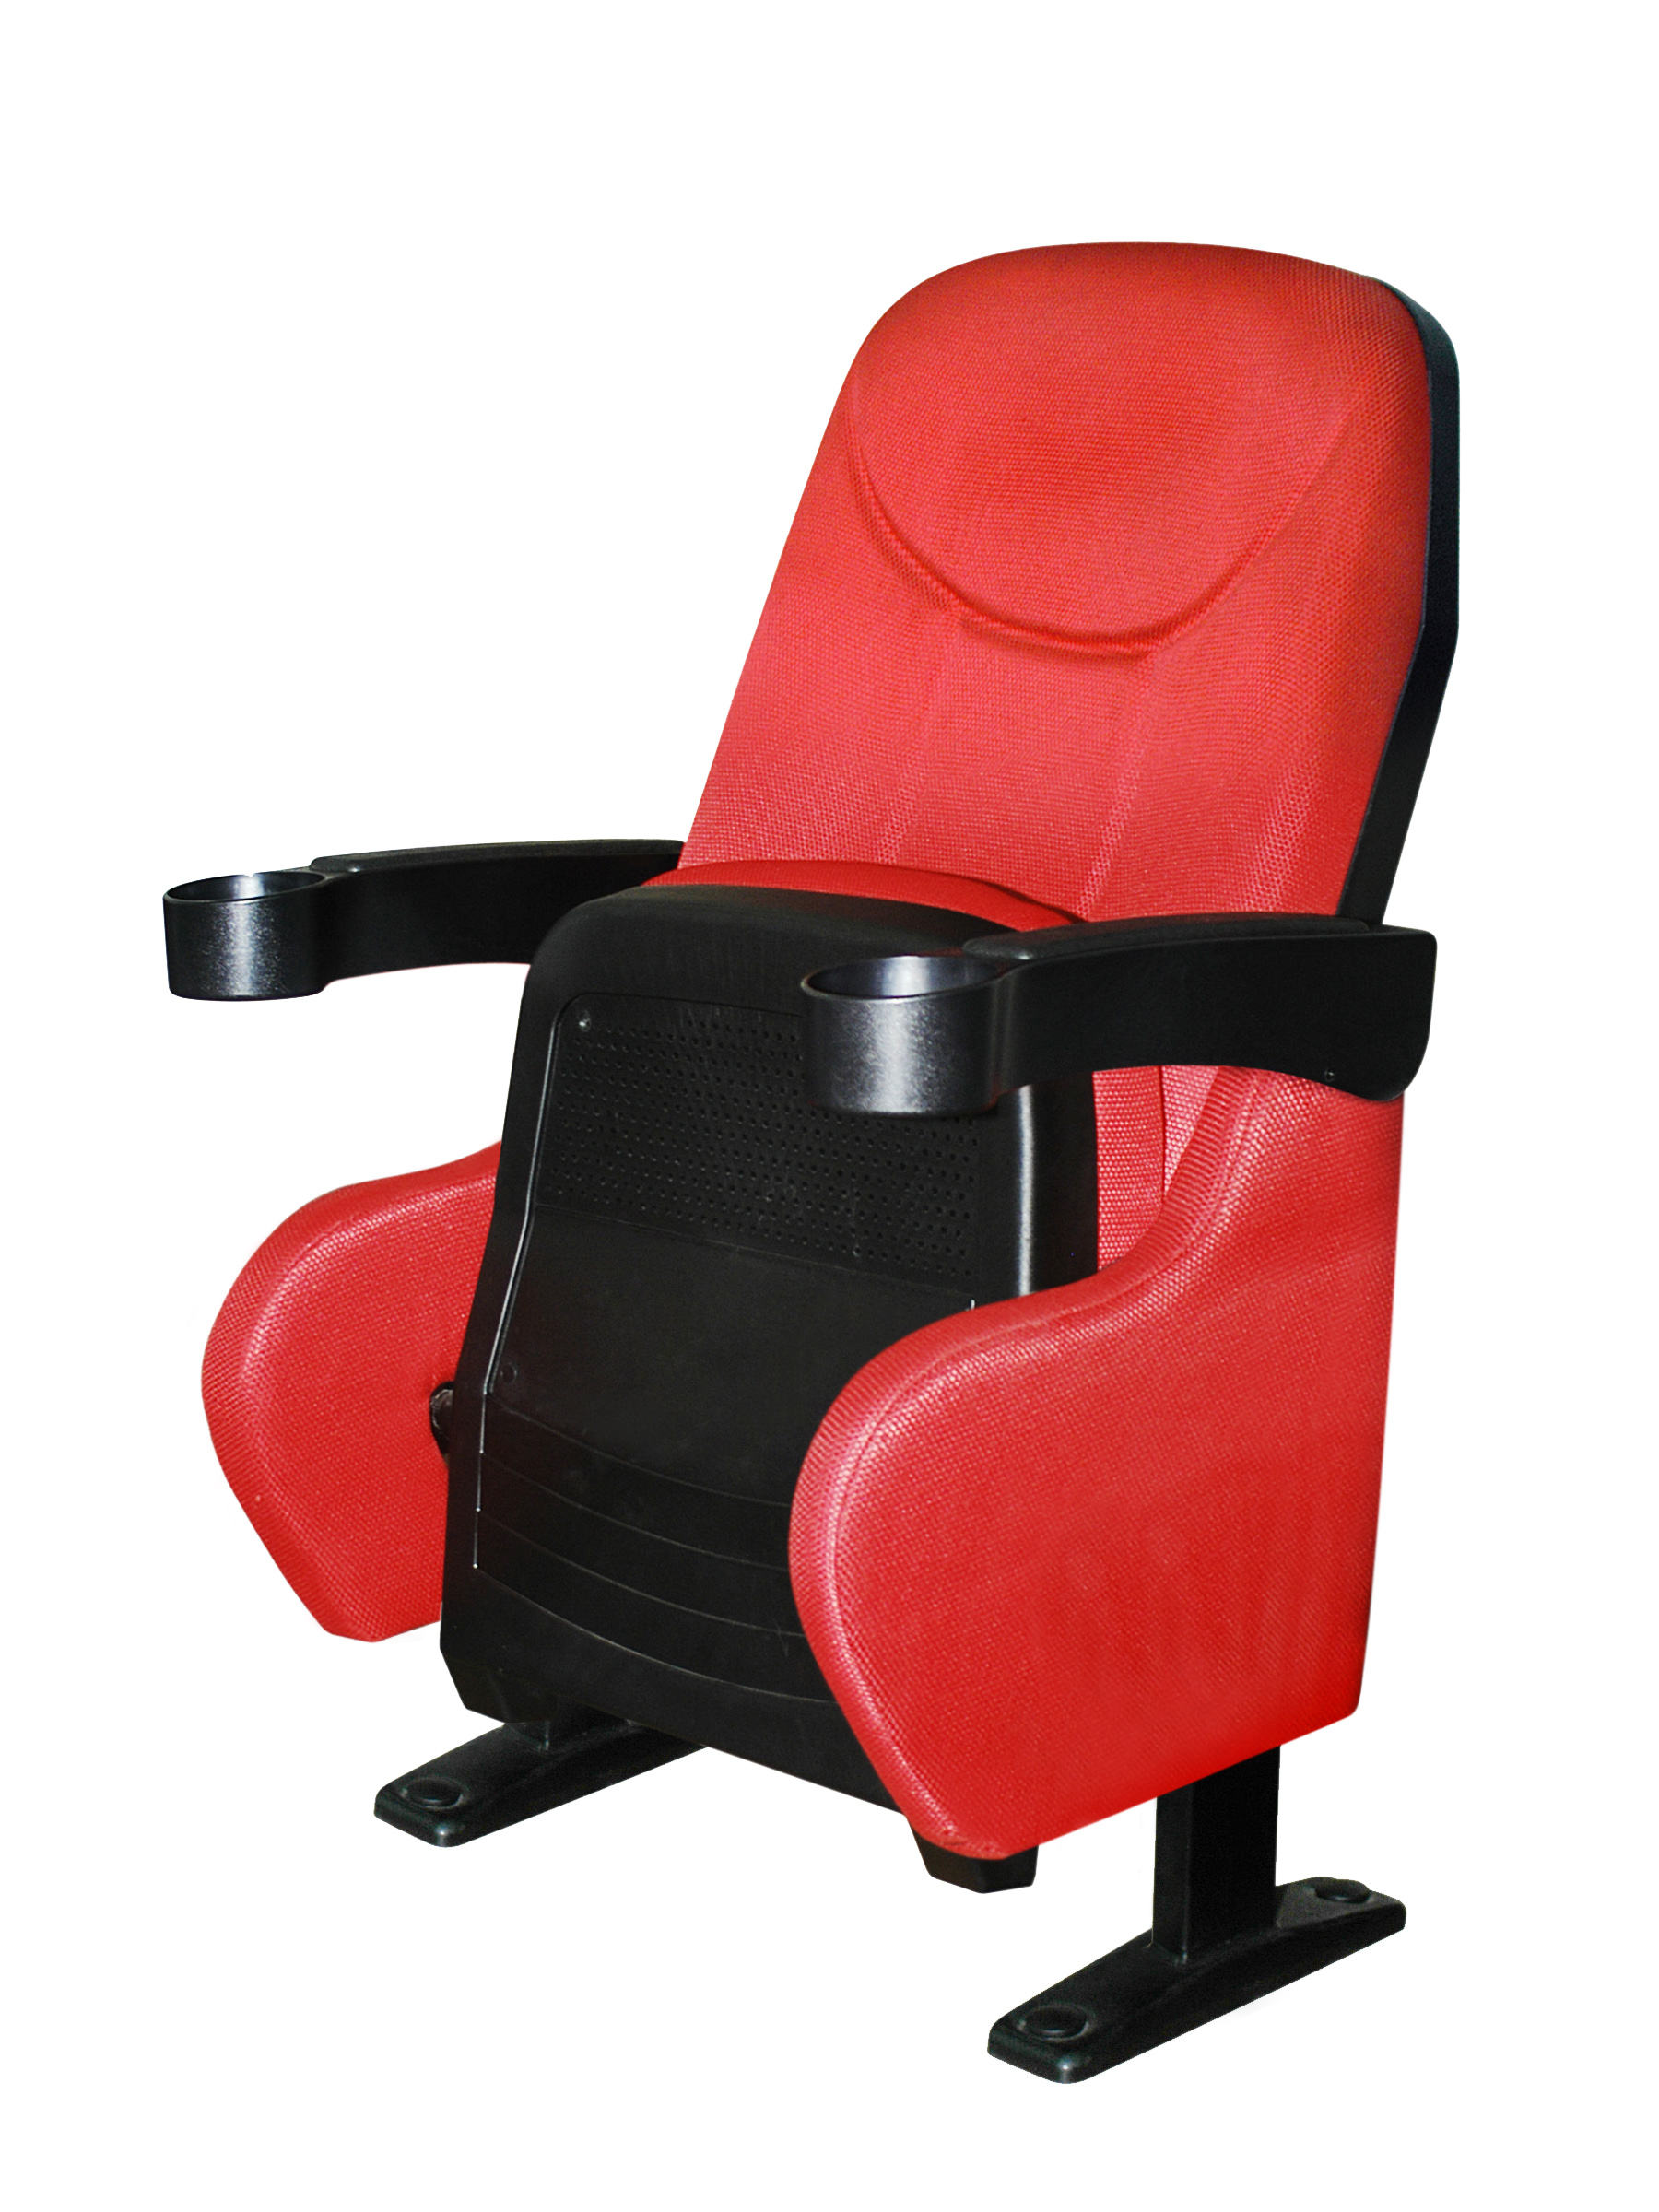 Gang Chair 4 Seater